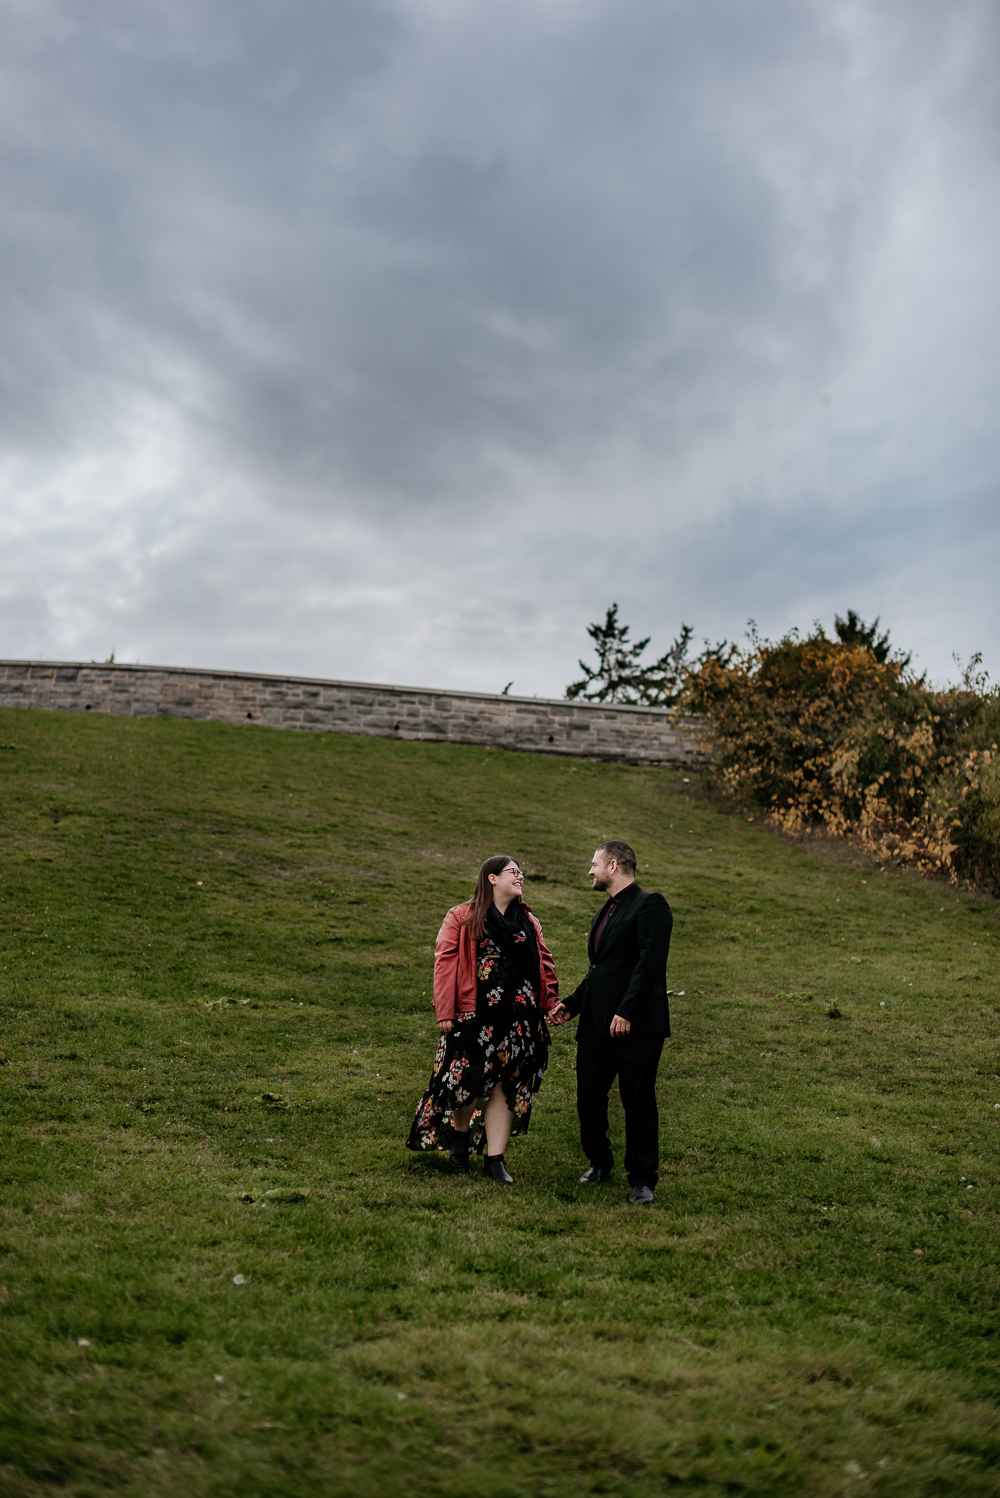 Newly engaged couple walking hand in hand down a hill at the Dominion Arboretum in Ottawa. Cloudy overcast skies create a dramatic effect while the brides red leather jacket pops against the green grass. Photo taken by Ottawa Photographer Samantha Danis.